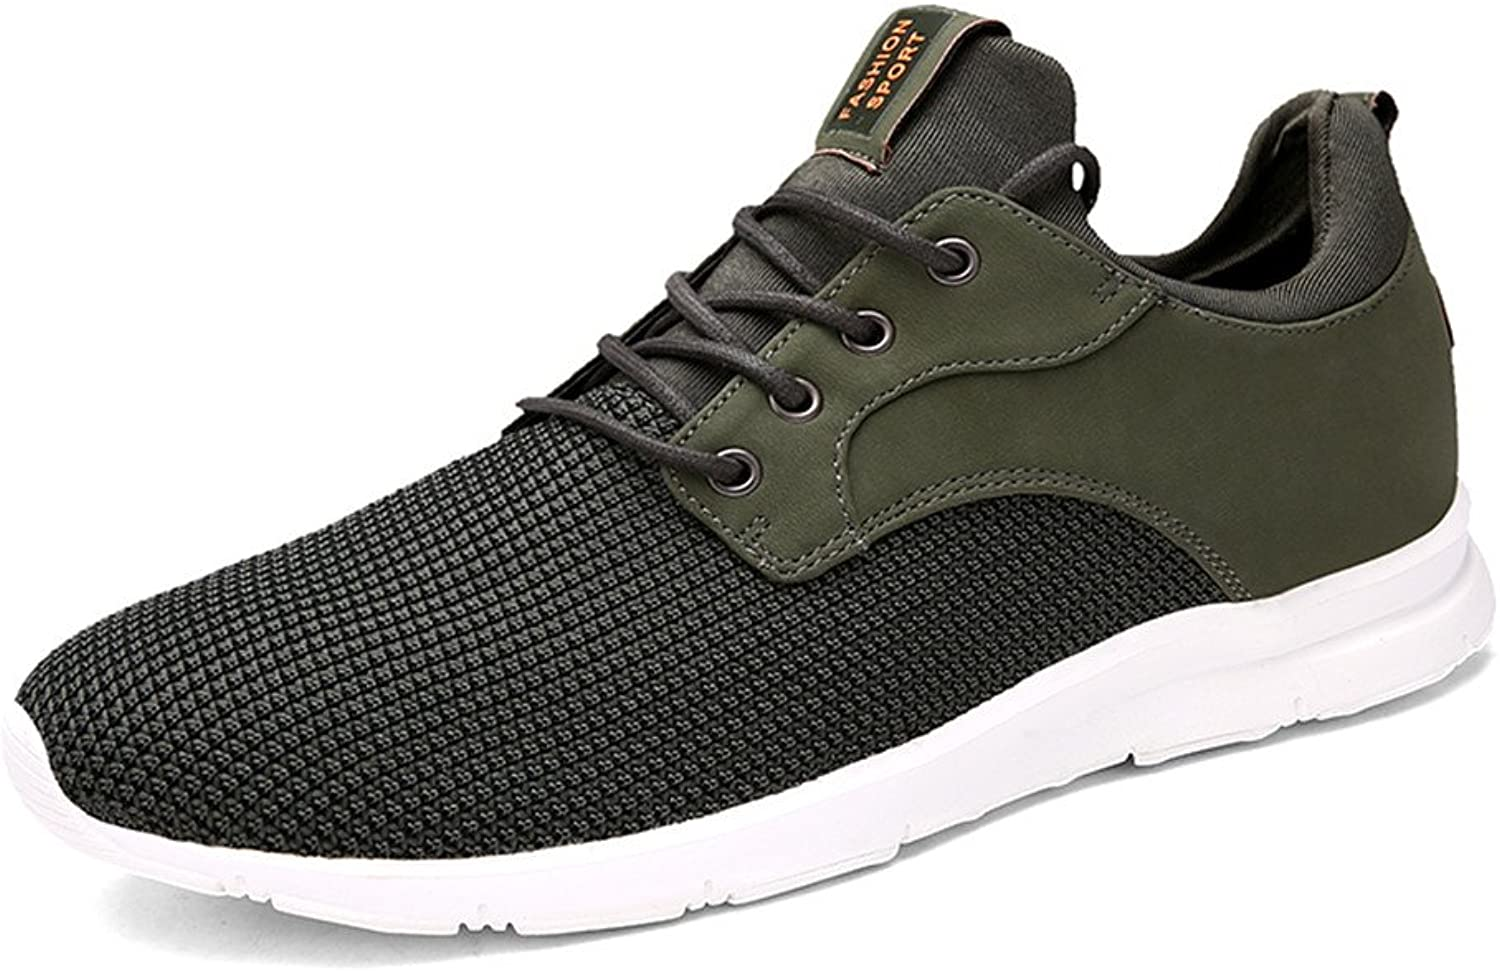 Earsoon Running shoes Men Tennis shoes - 2018 Jogging Walking Athletic Outdoor shoes